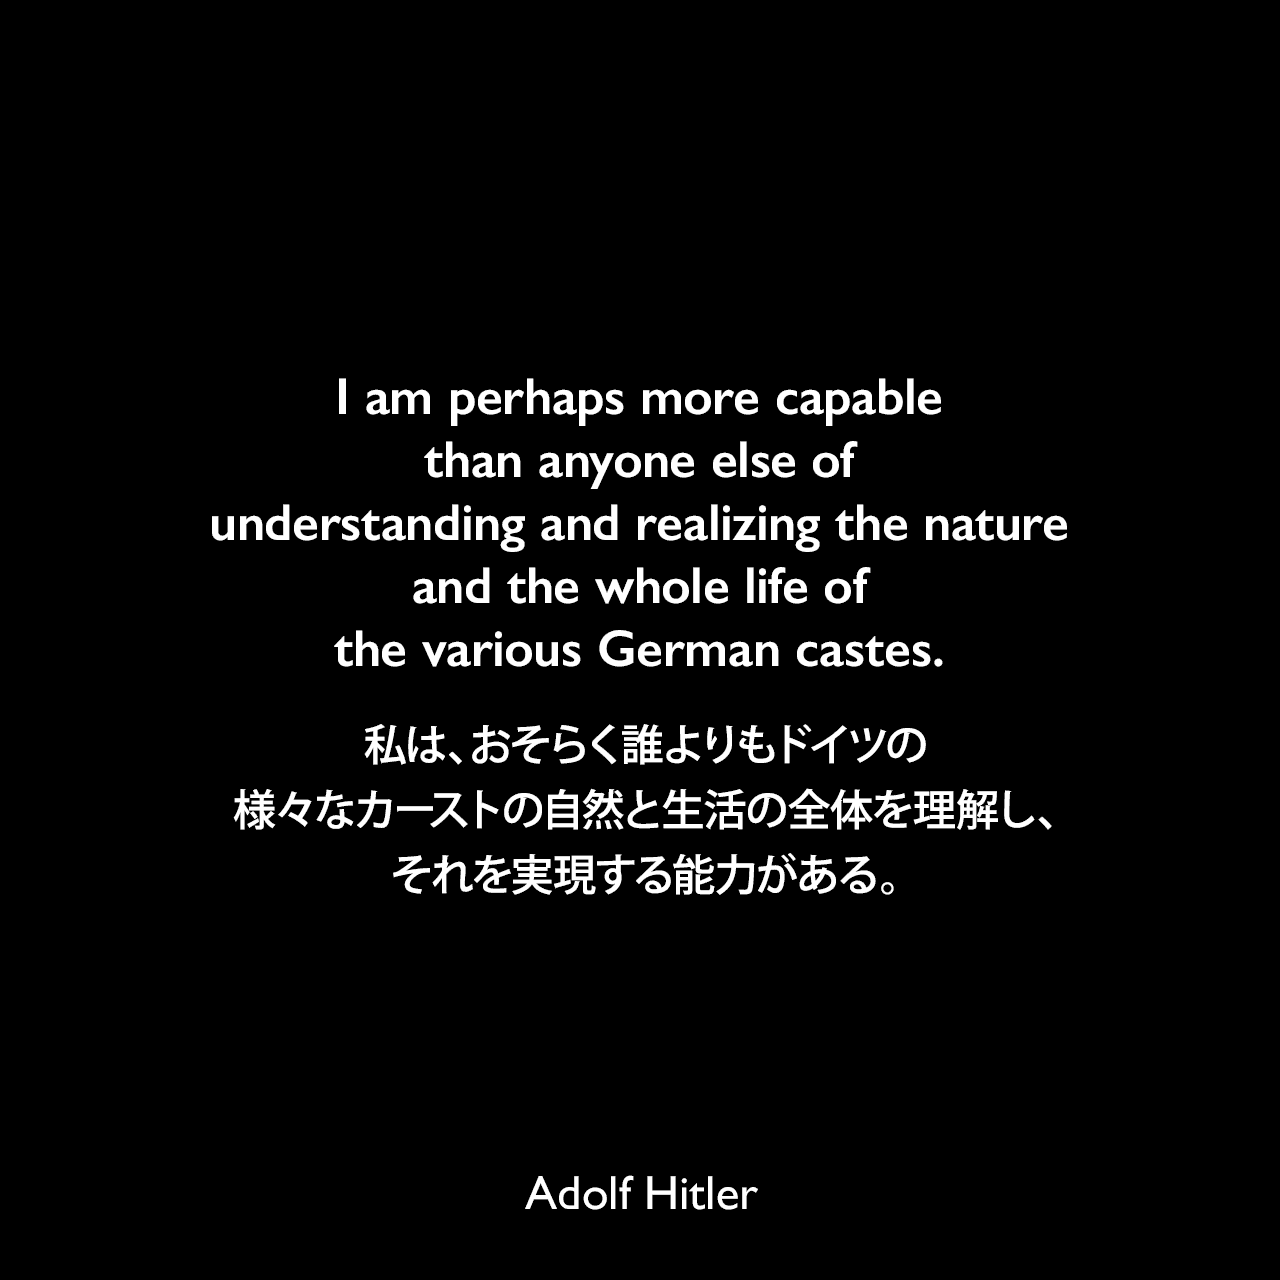 I am perhaps more capable than anyone else of understanding and realizing the nature and the whole life of the various German castes.私は、おそらく誰よりもドイツの様々なカーストの自然と生活の全体を理解し、それを実現する能力がある。- 1922年4月12日ミュンヘンでのスピーチよりAdolf Hitler